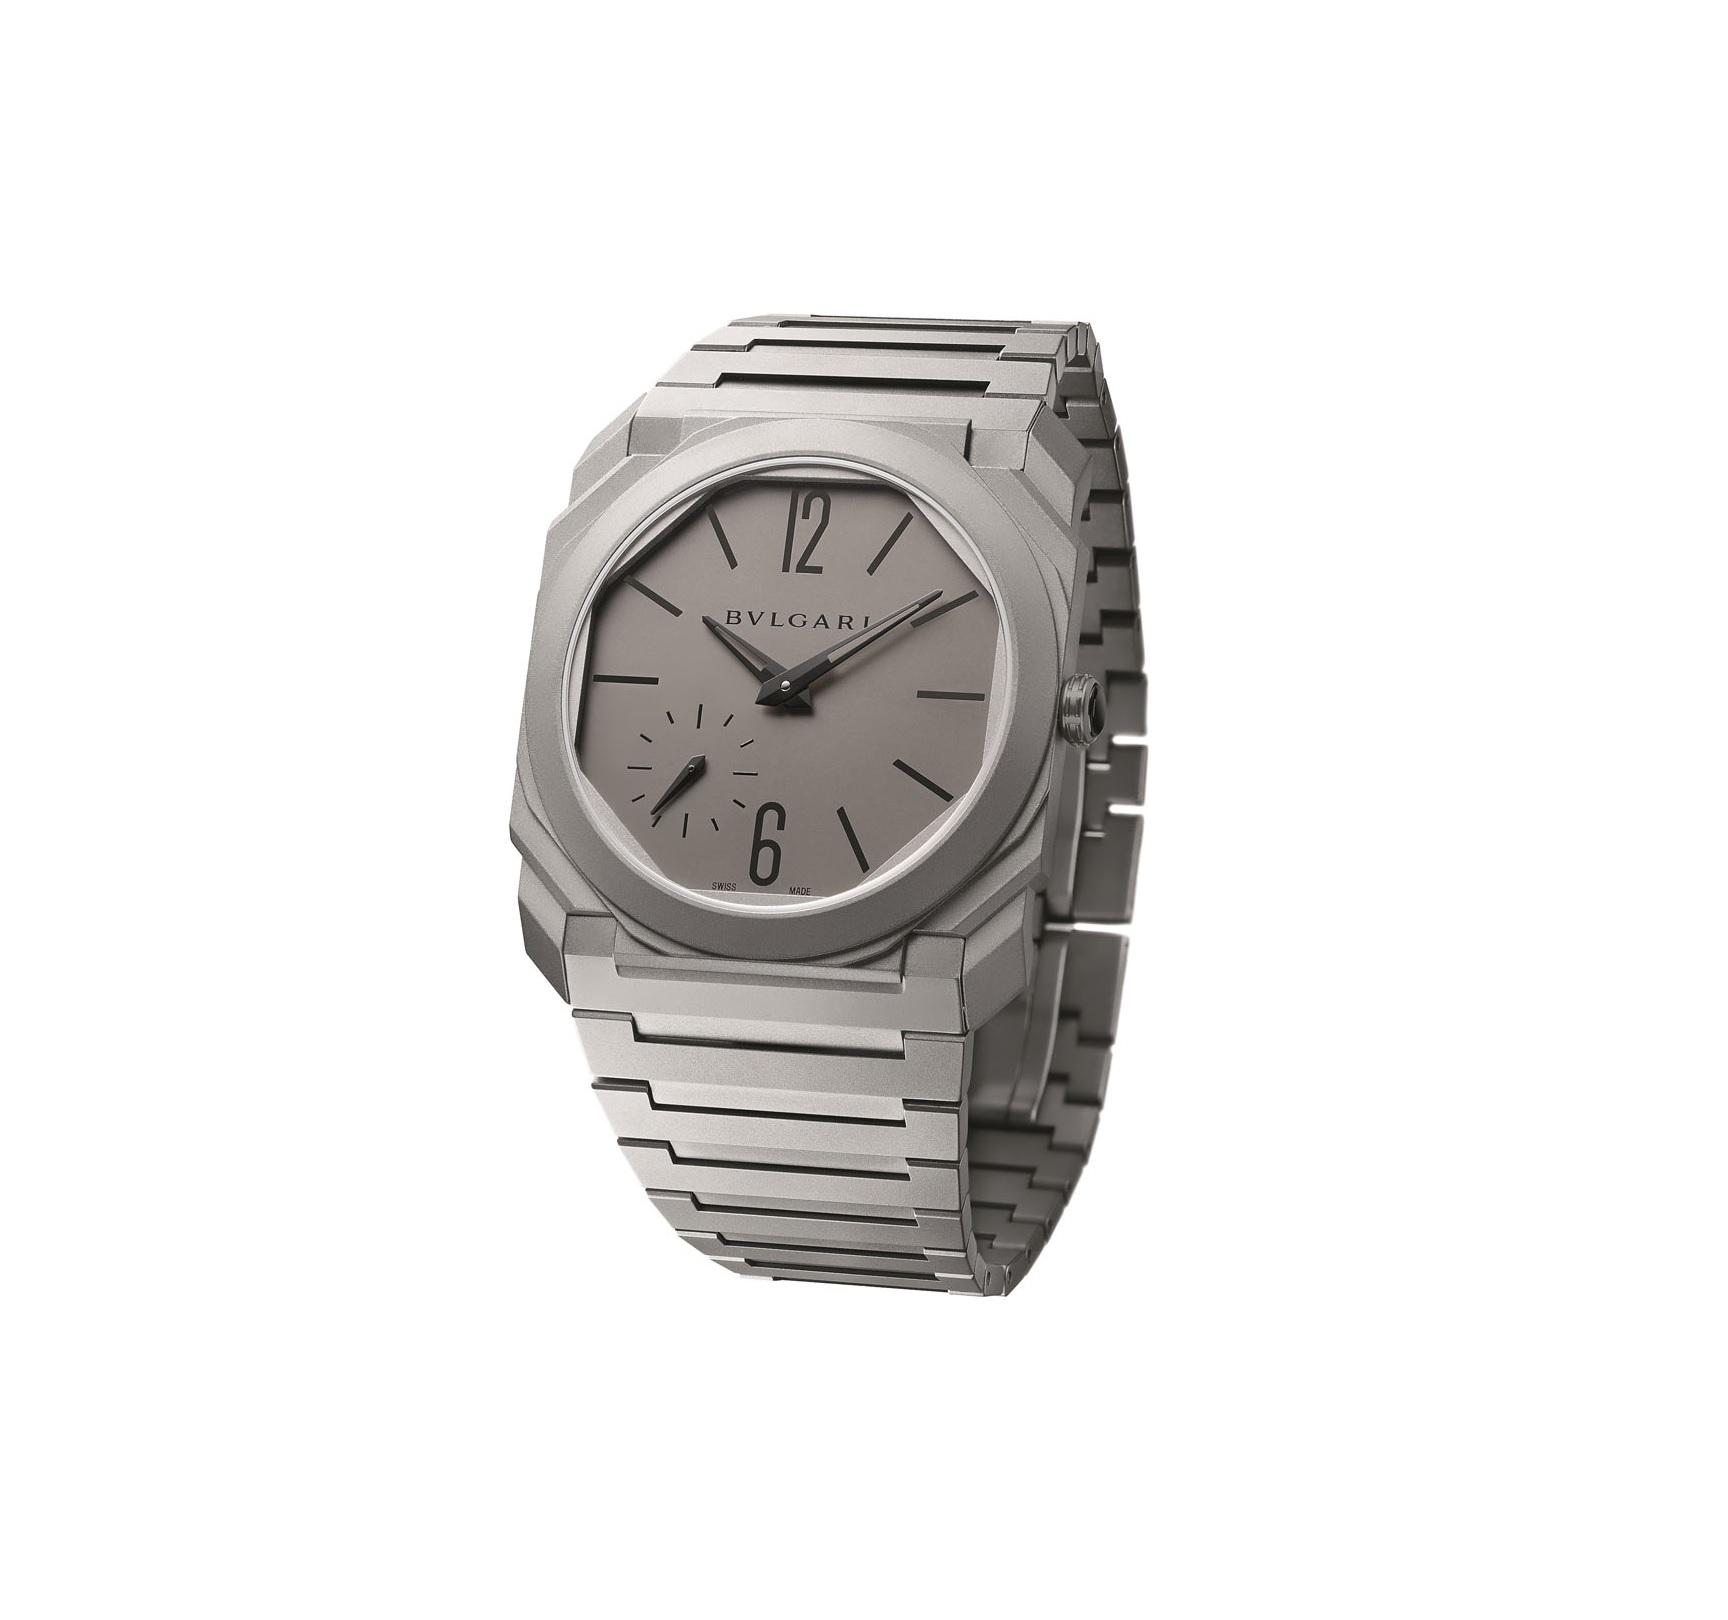 Bulgari Octo Finissimo Extra Thin 40mm | 13.900 USD